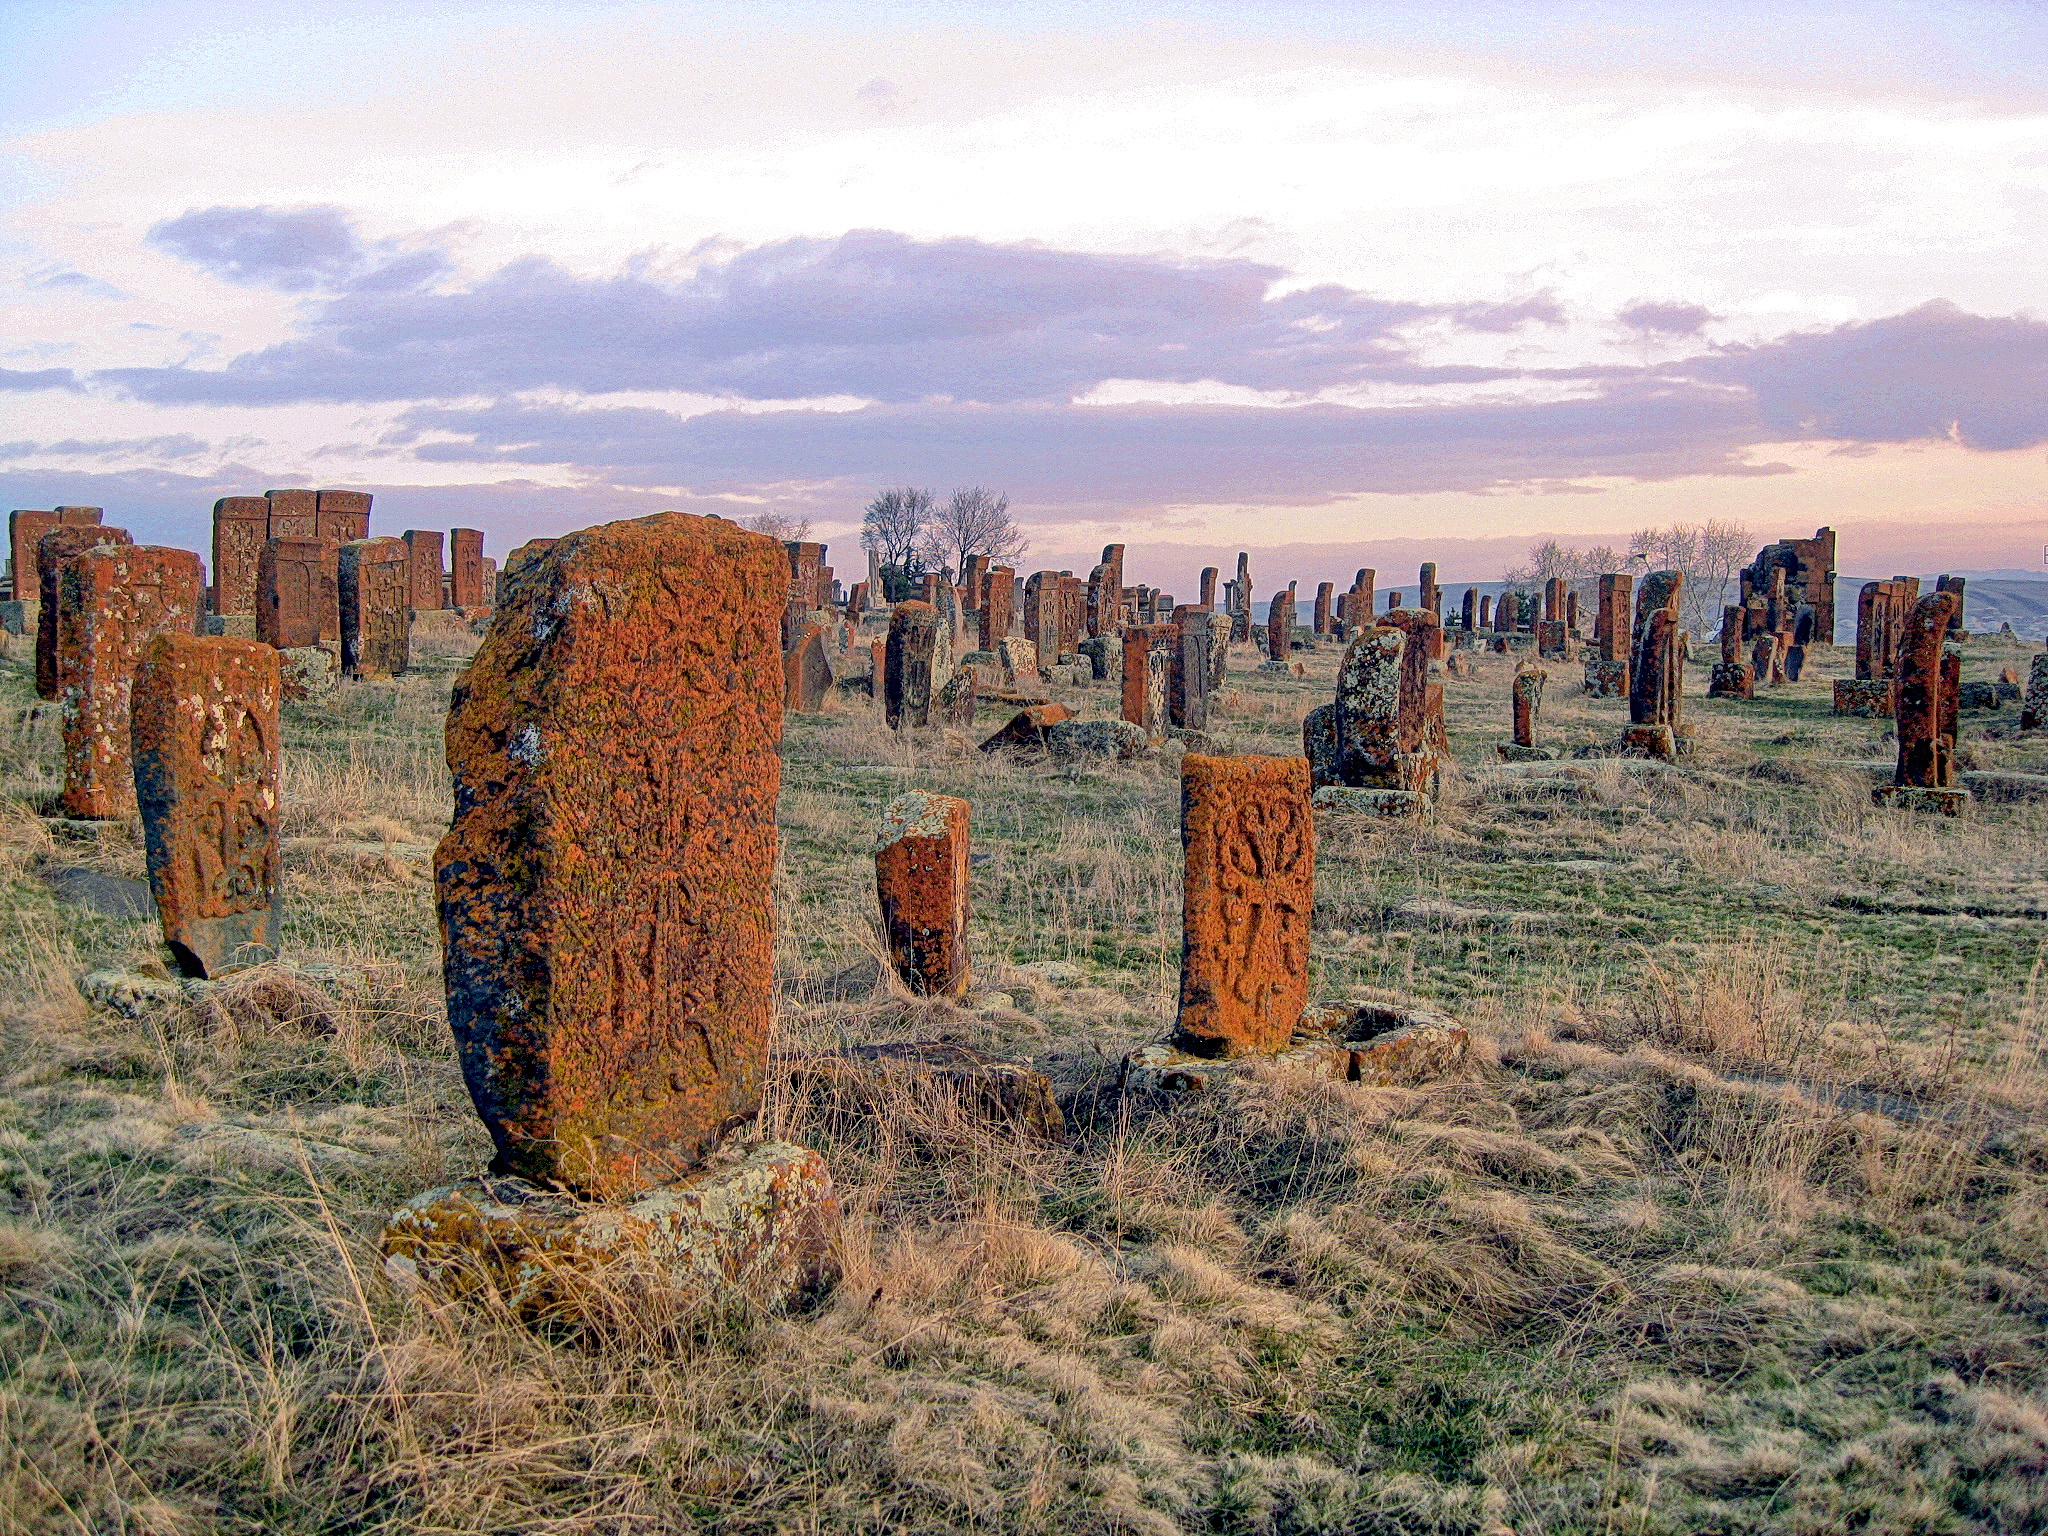 The Noratus cemetery, the earliest works of which date back almost a thousand years